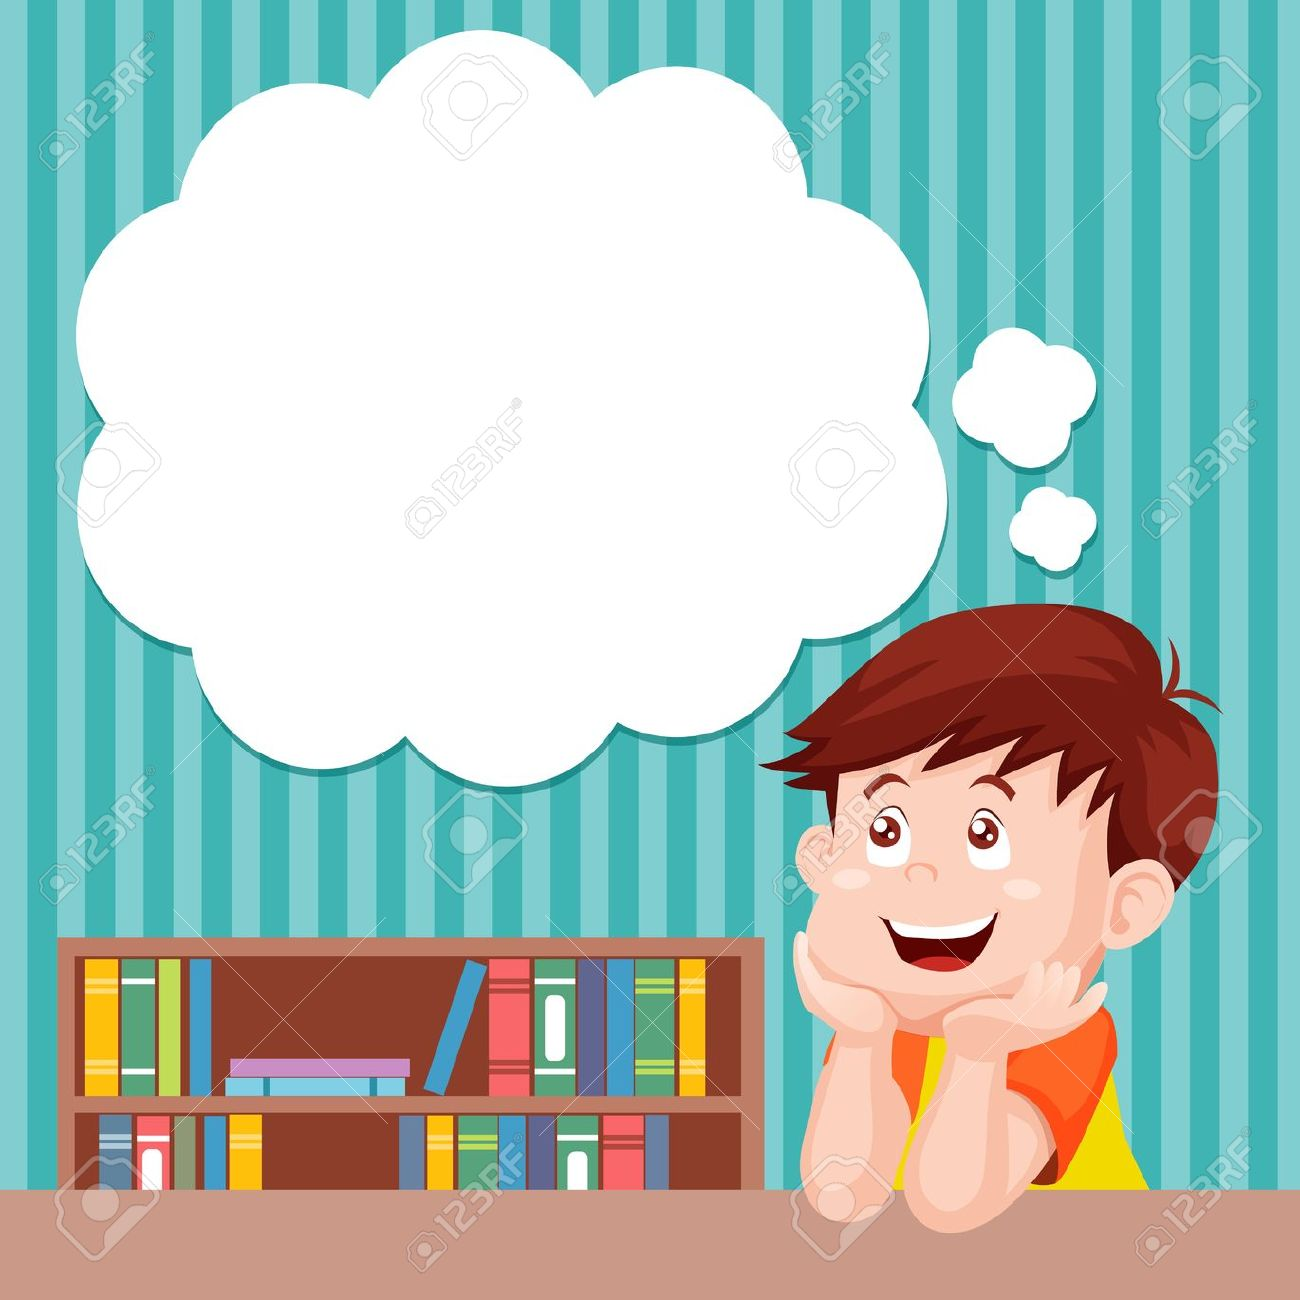 hight resolution of cartoon boy thinking with white bubble for text royalty free